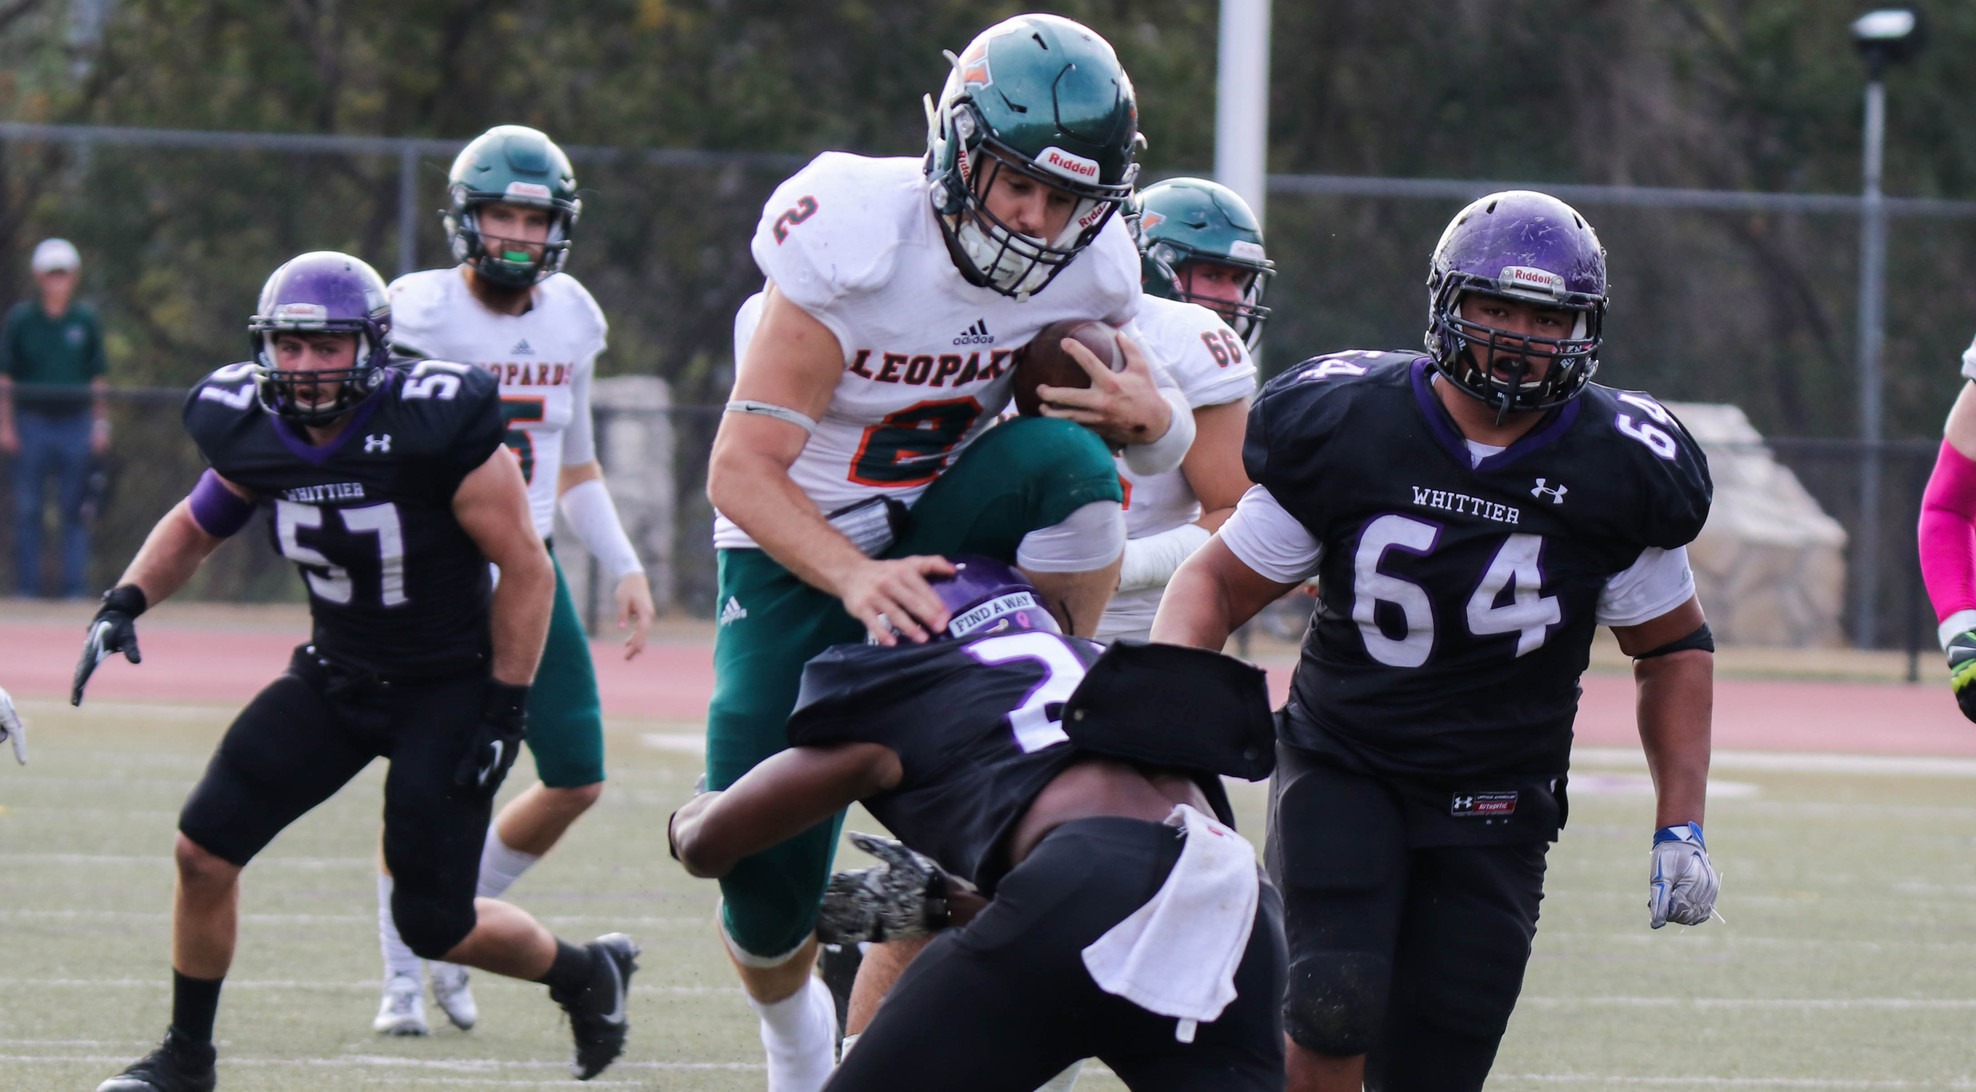 Football routs Whittier, 41-14, in finale